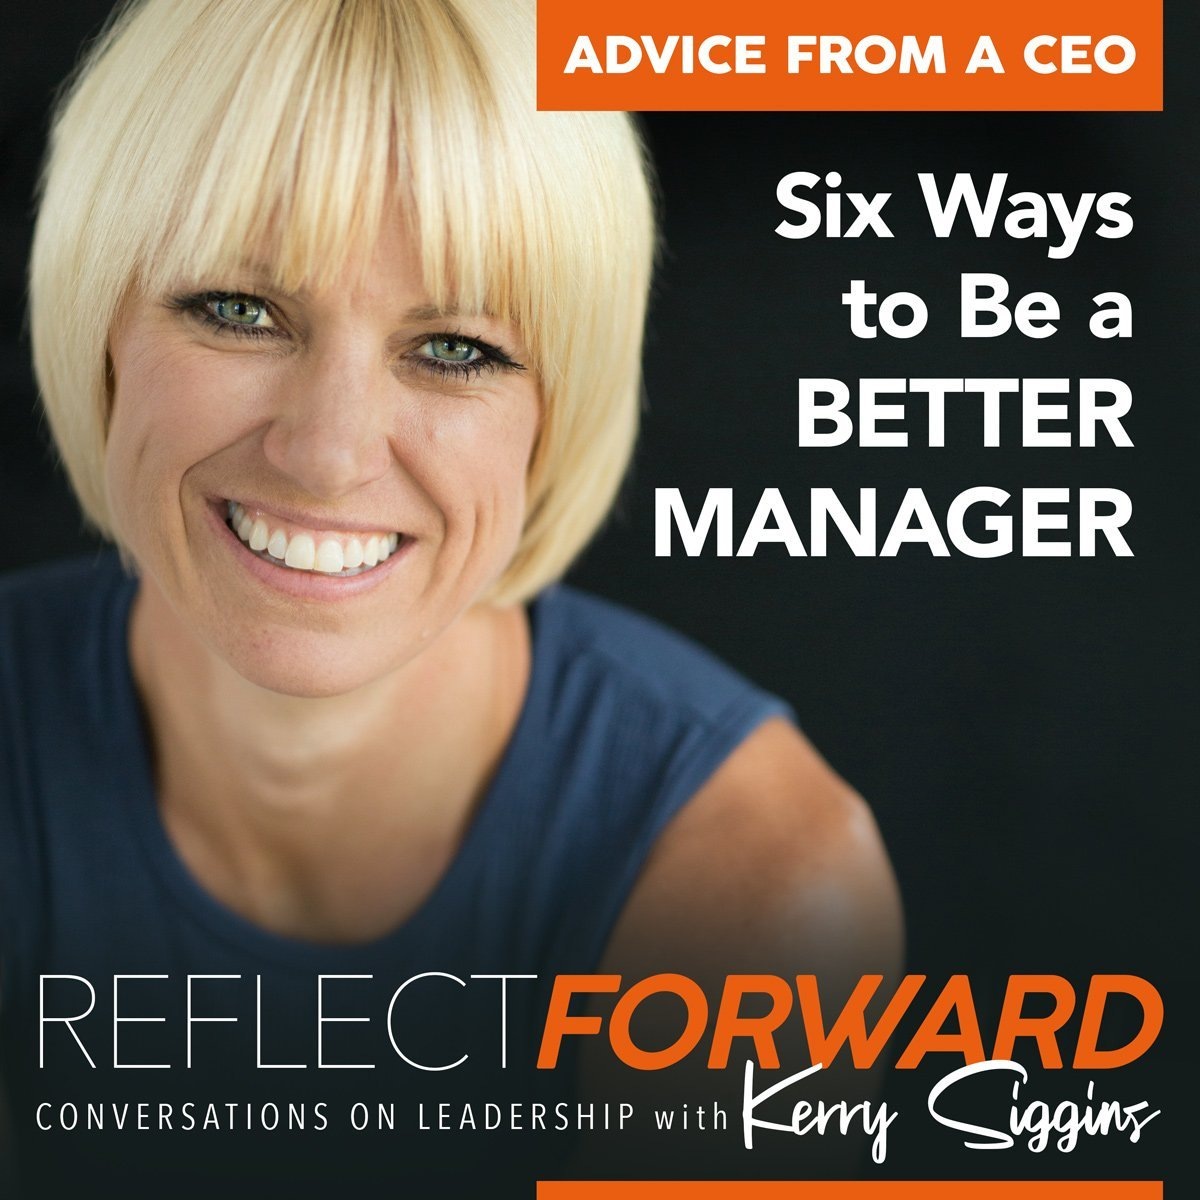 Six Ways to be a Better Manager